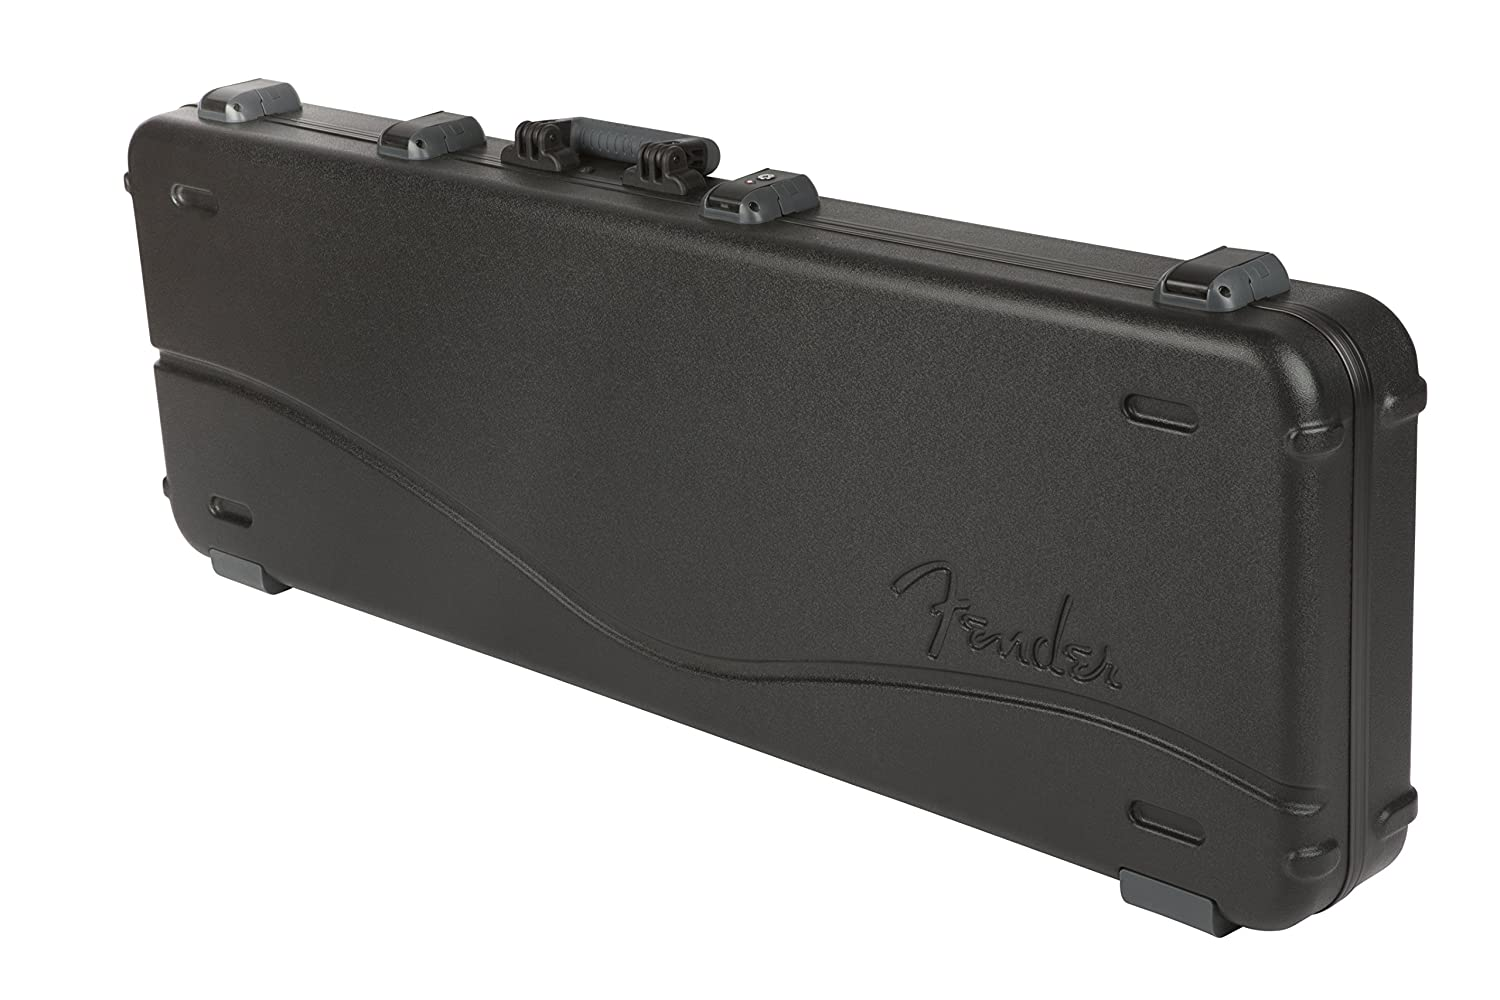 d3d9be8abf Amazon.com: Fender Deluxe Molded Jazz and Precision Electric Bass Guitar  Case - Black: Musical Instruments